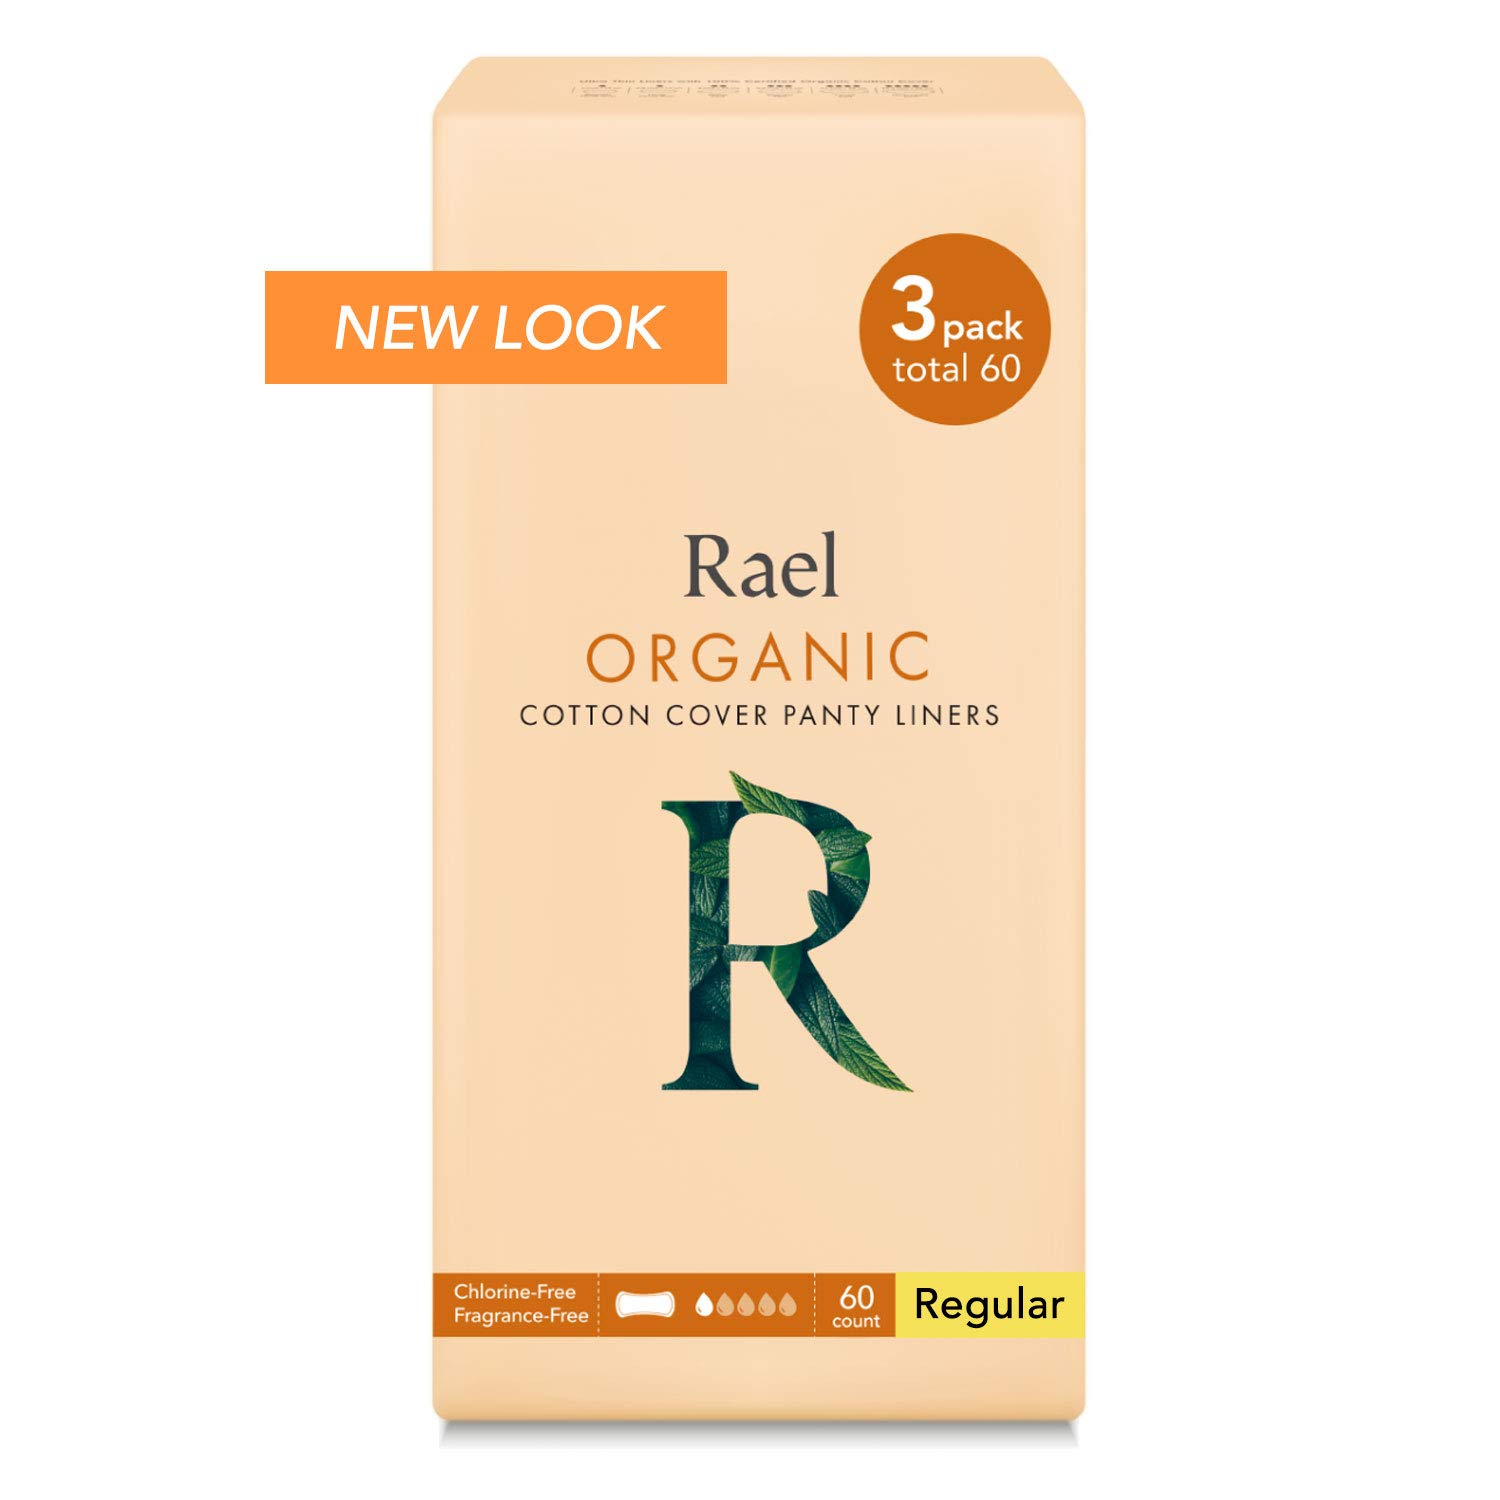 Rael Certified Organic CottonPanty Liners, Regular - 3Pack/60 total - Unscented Pantiliners - Natural Daily Pantyliners (3 Pack) by Rael